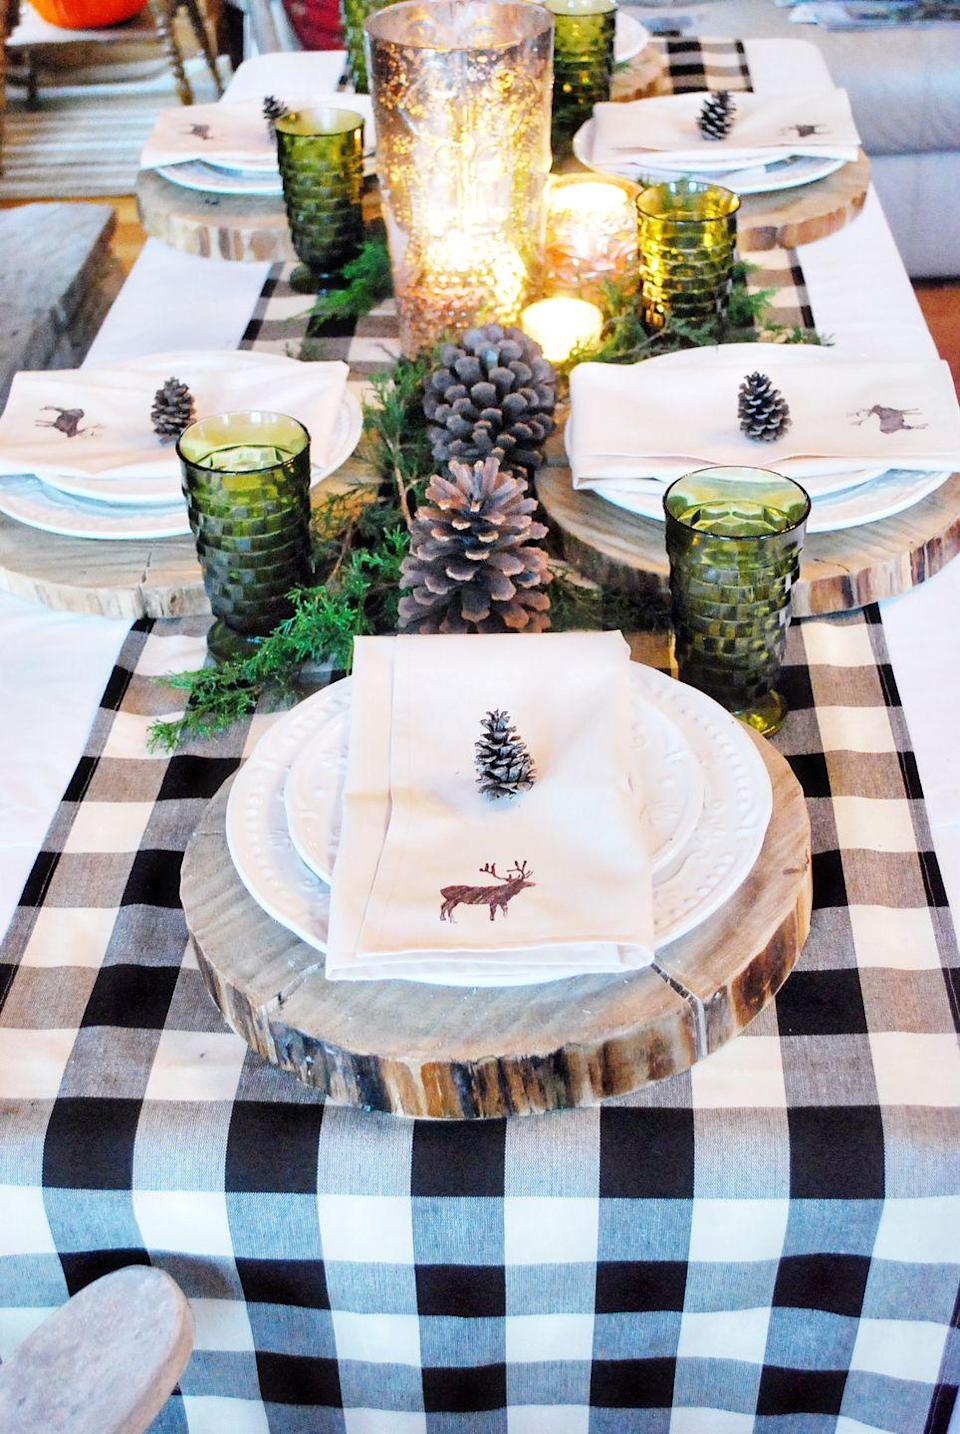 "<p>The classic white-and-black checkered pattern looks totally rustic when paired with wooden chargers.</p><p>See more at <a href=""http://thewhitebuffalostylingco.com/life-of-splendor-christmas-line/"" rel=""nofollow noopener"" target=""_blank"" data-ylk=""slk:The White Buffalo Styling Co."" class=""link rapid-noclick-resp"">The White Buffalo Styling Co.</a>.</p>"